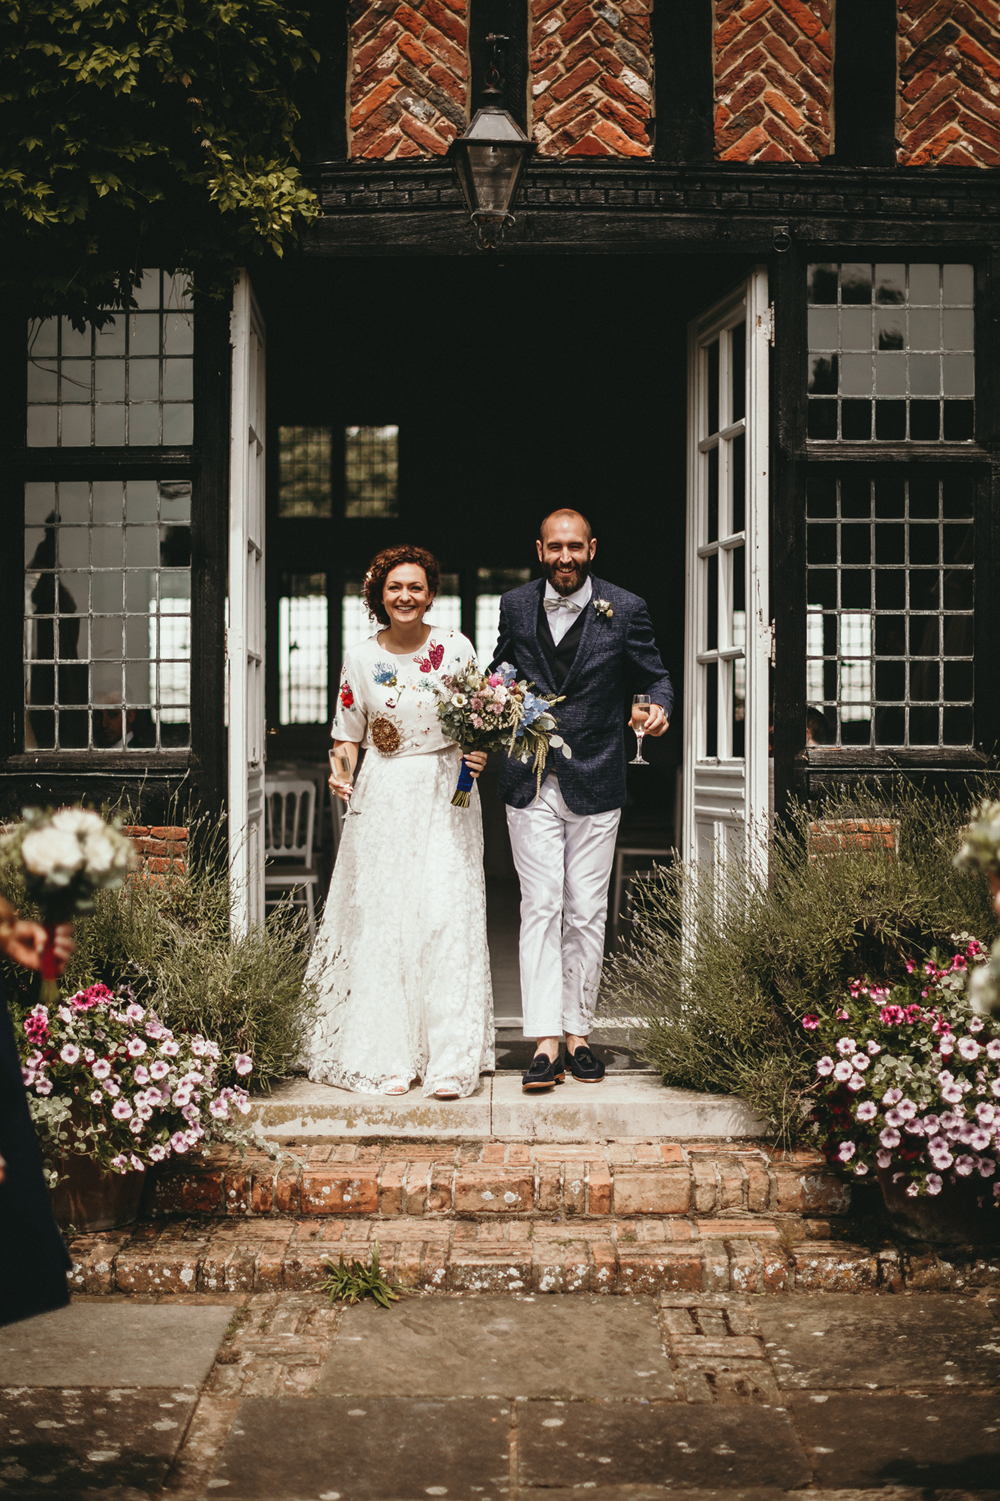 Sarah and Rob on their wedding day at Butley Priory